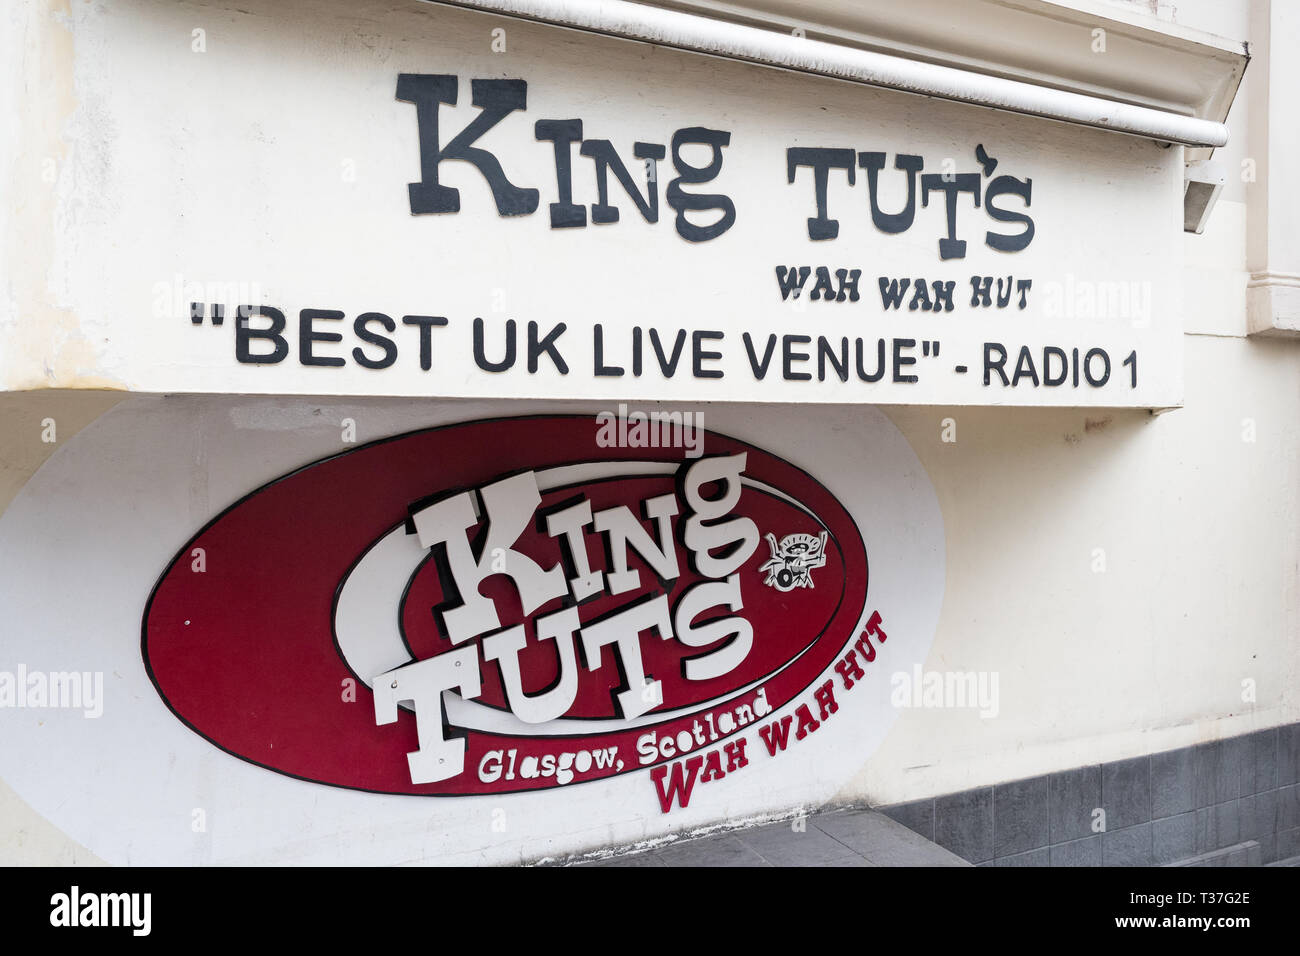 King Tuts Wah Wah Hut music venue, Glasgow, Scotland, UK Stock Photo